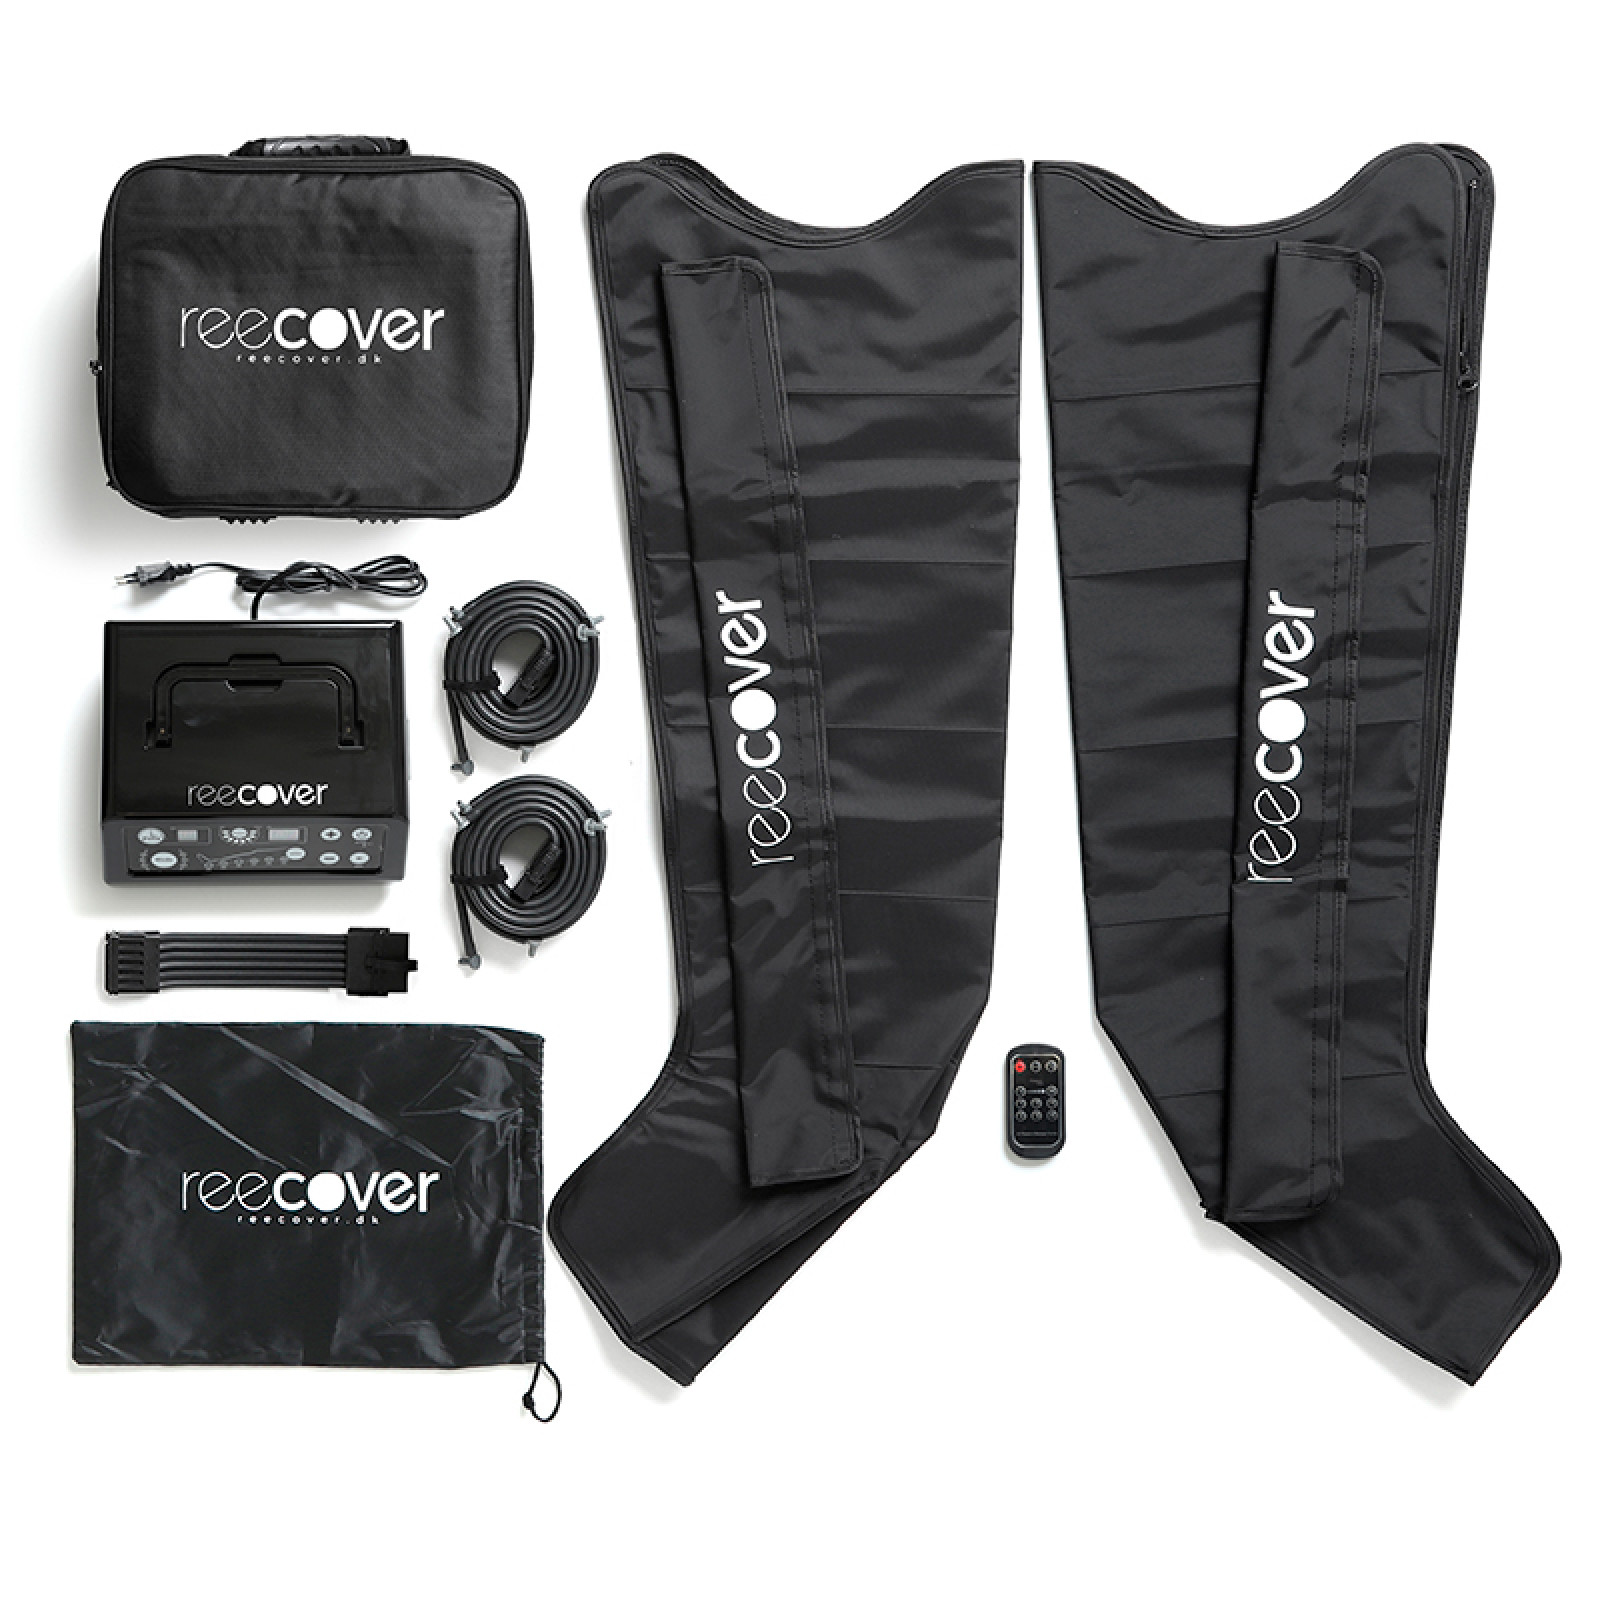 REECOVER Recovery Boots